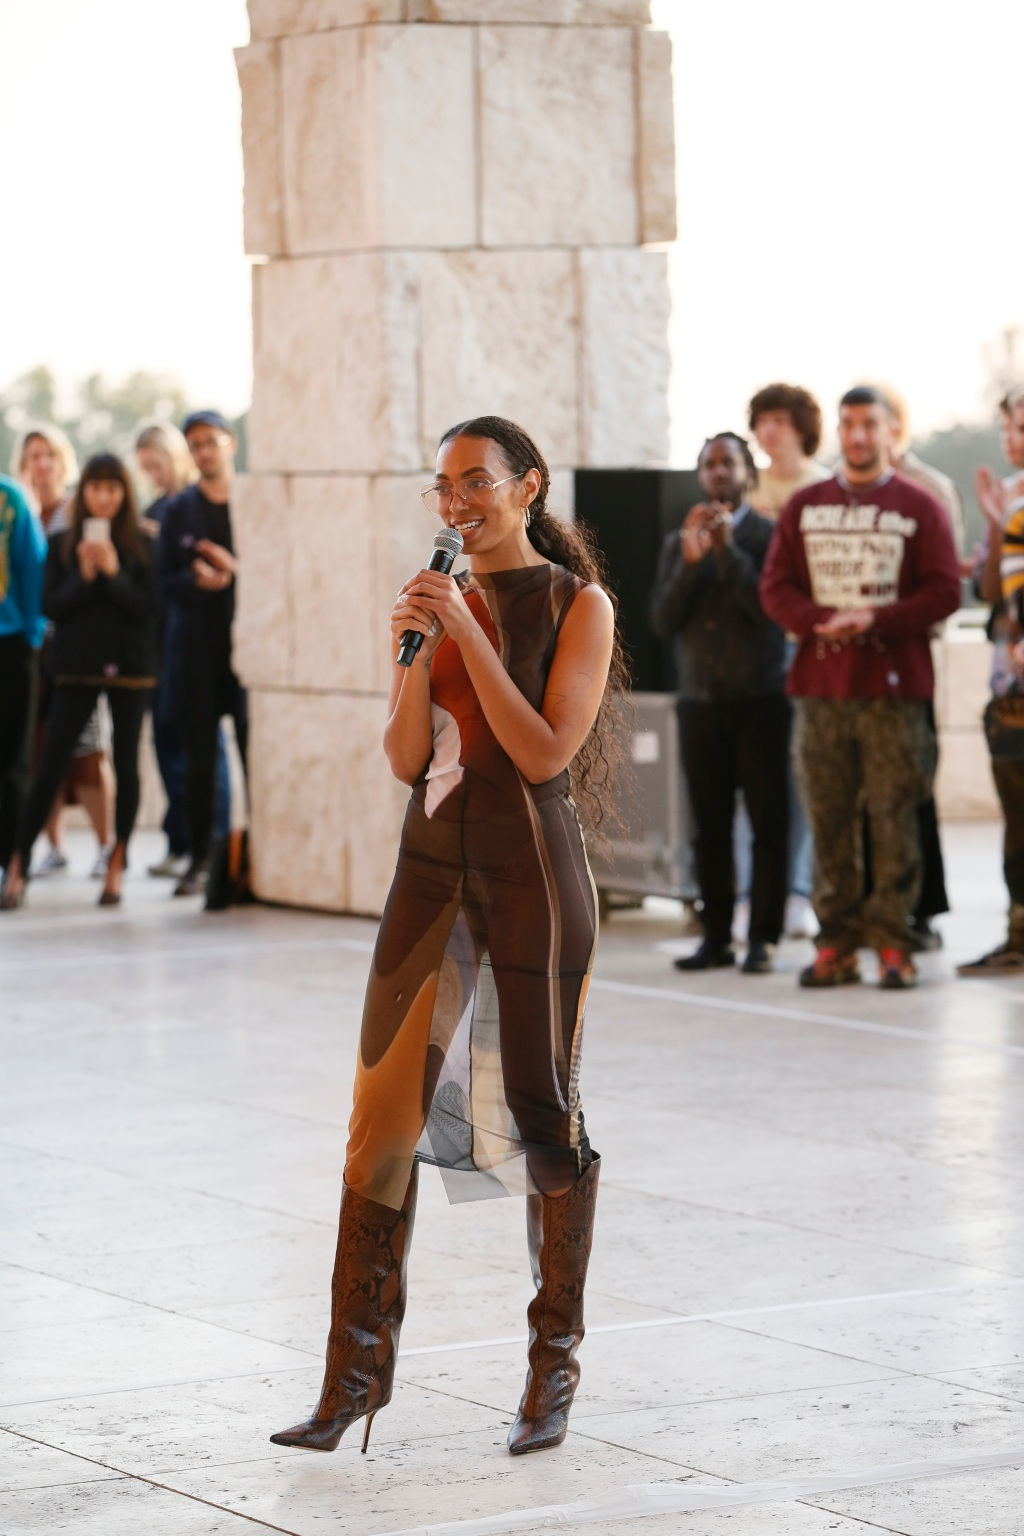 Solange Debuts New Site-specific Performance Piece At Getty Center, Los Angeles